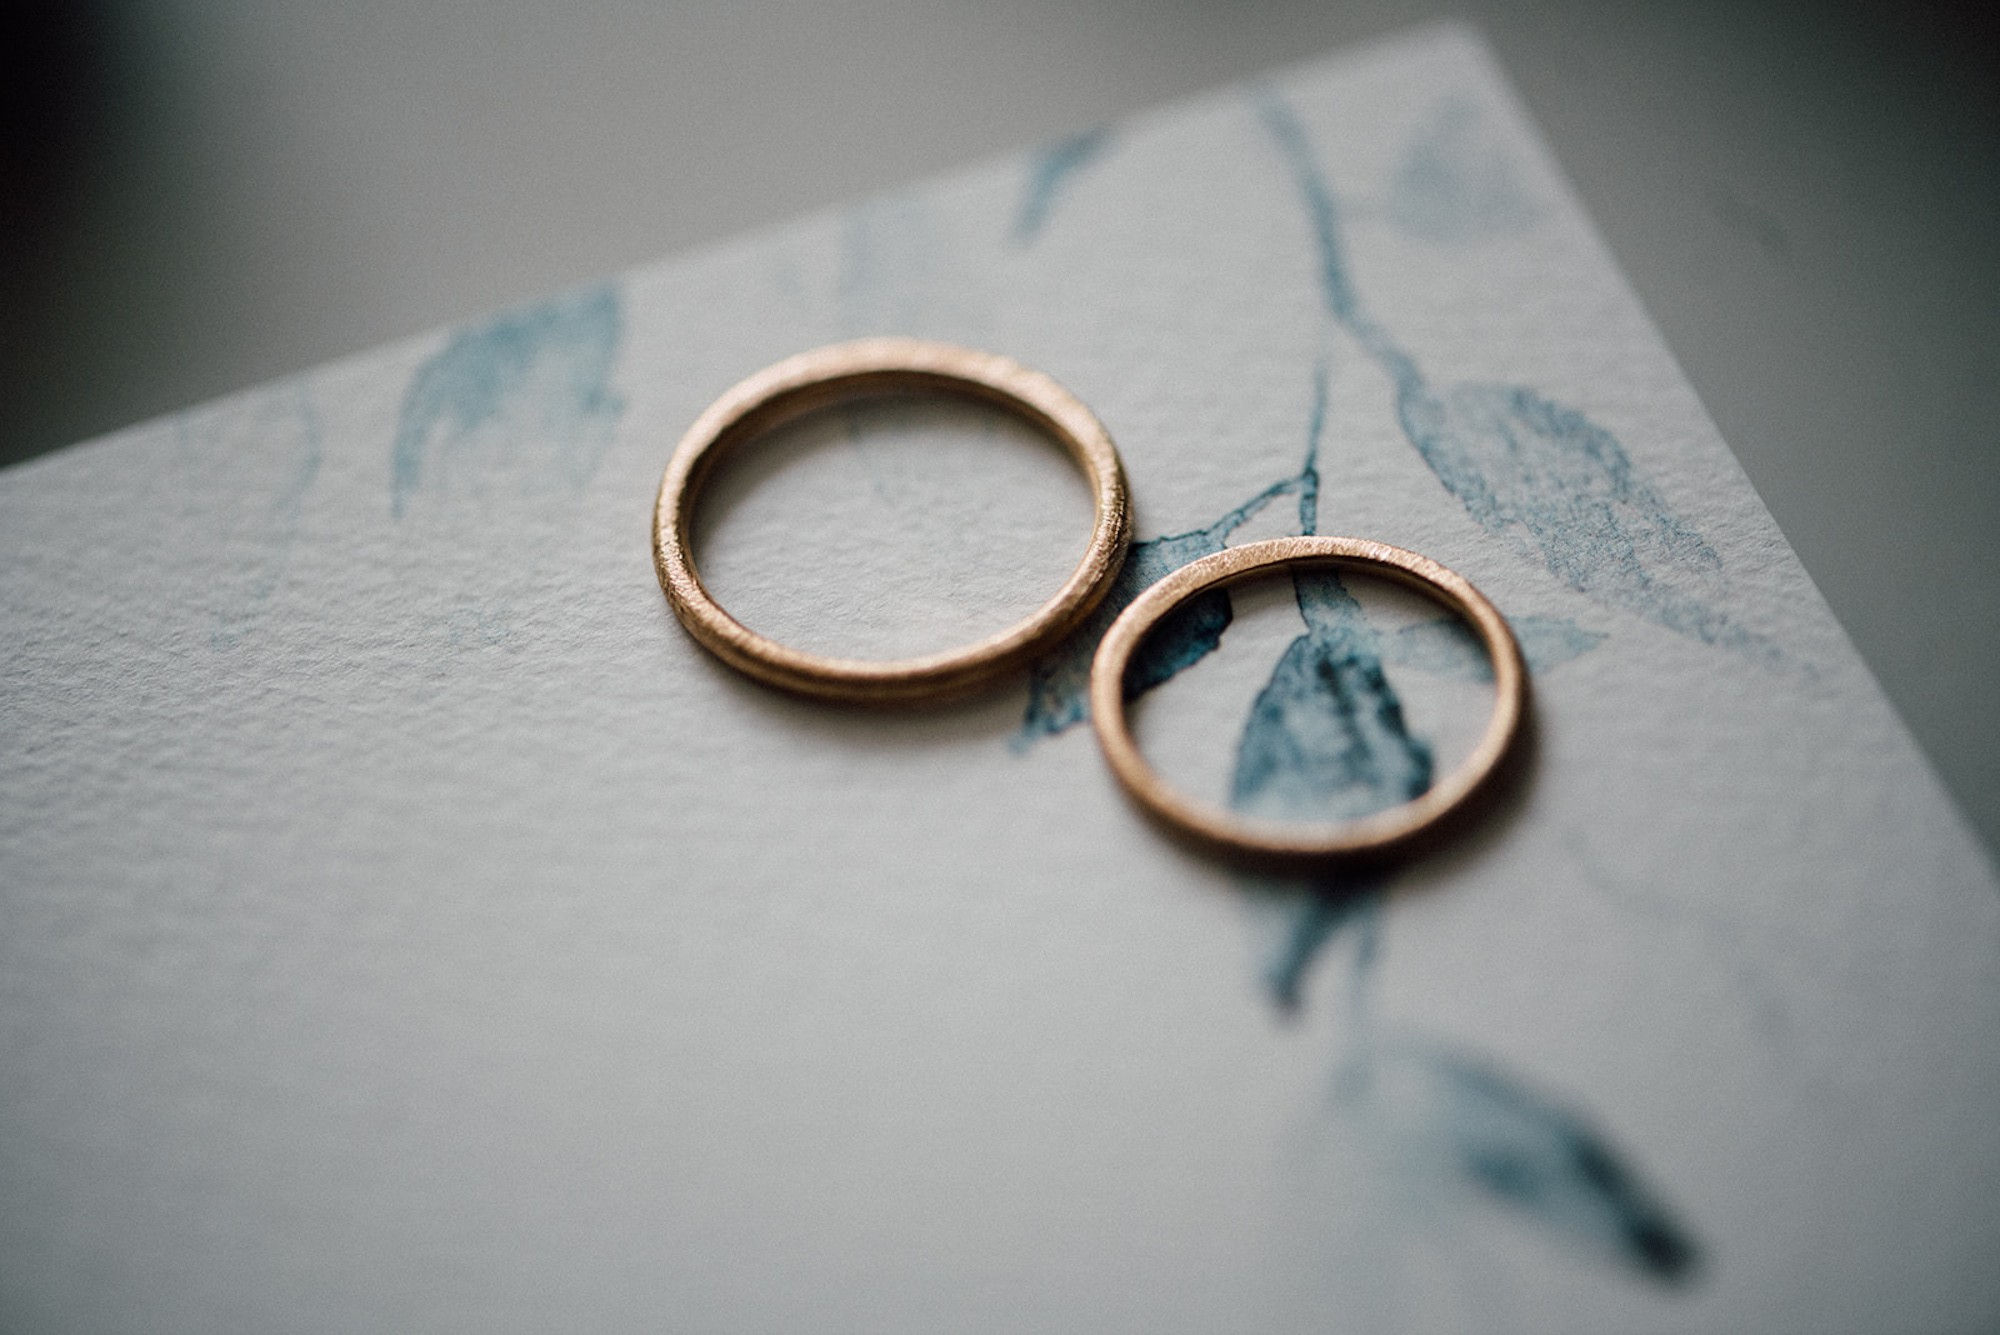 Handmade wedding rings - My Golden Age